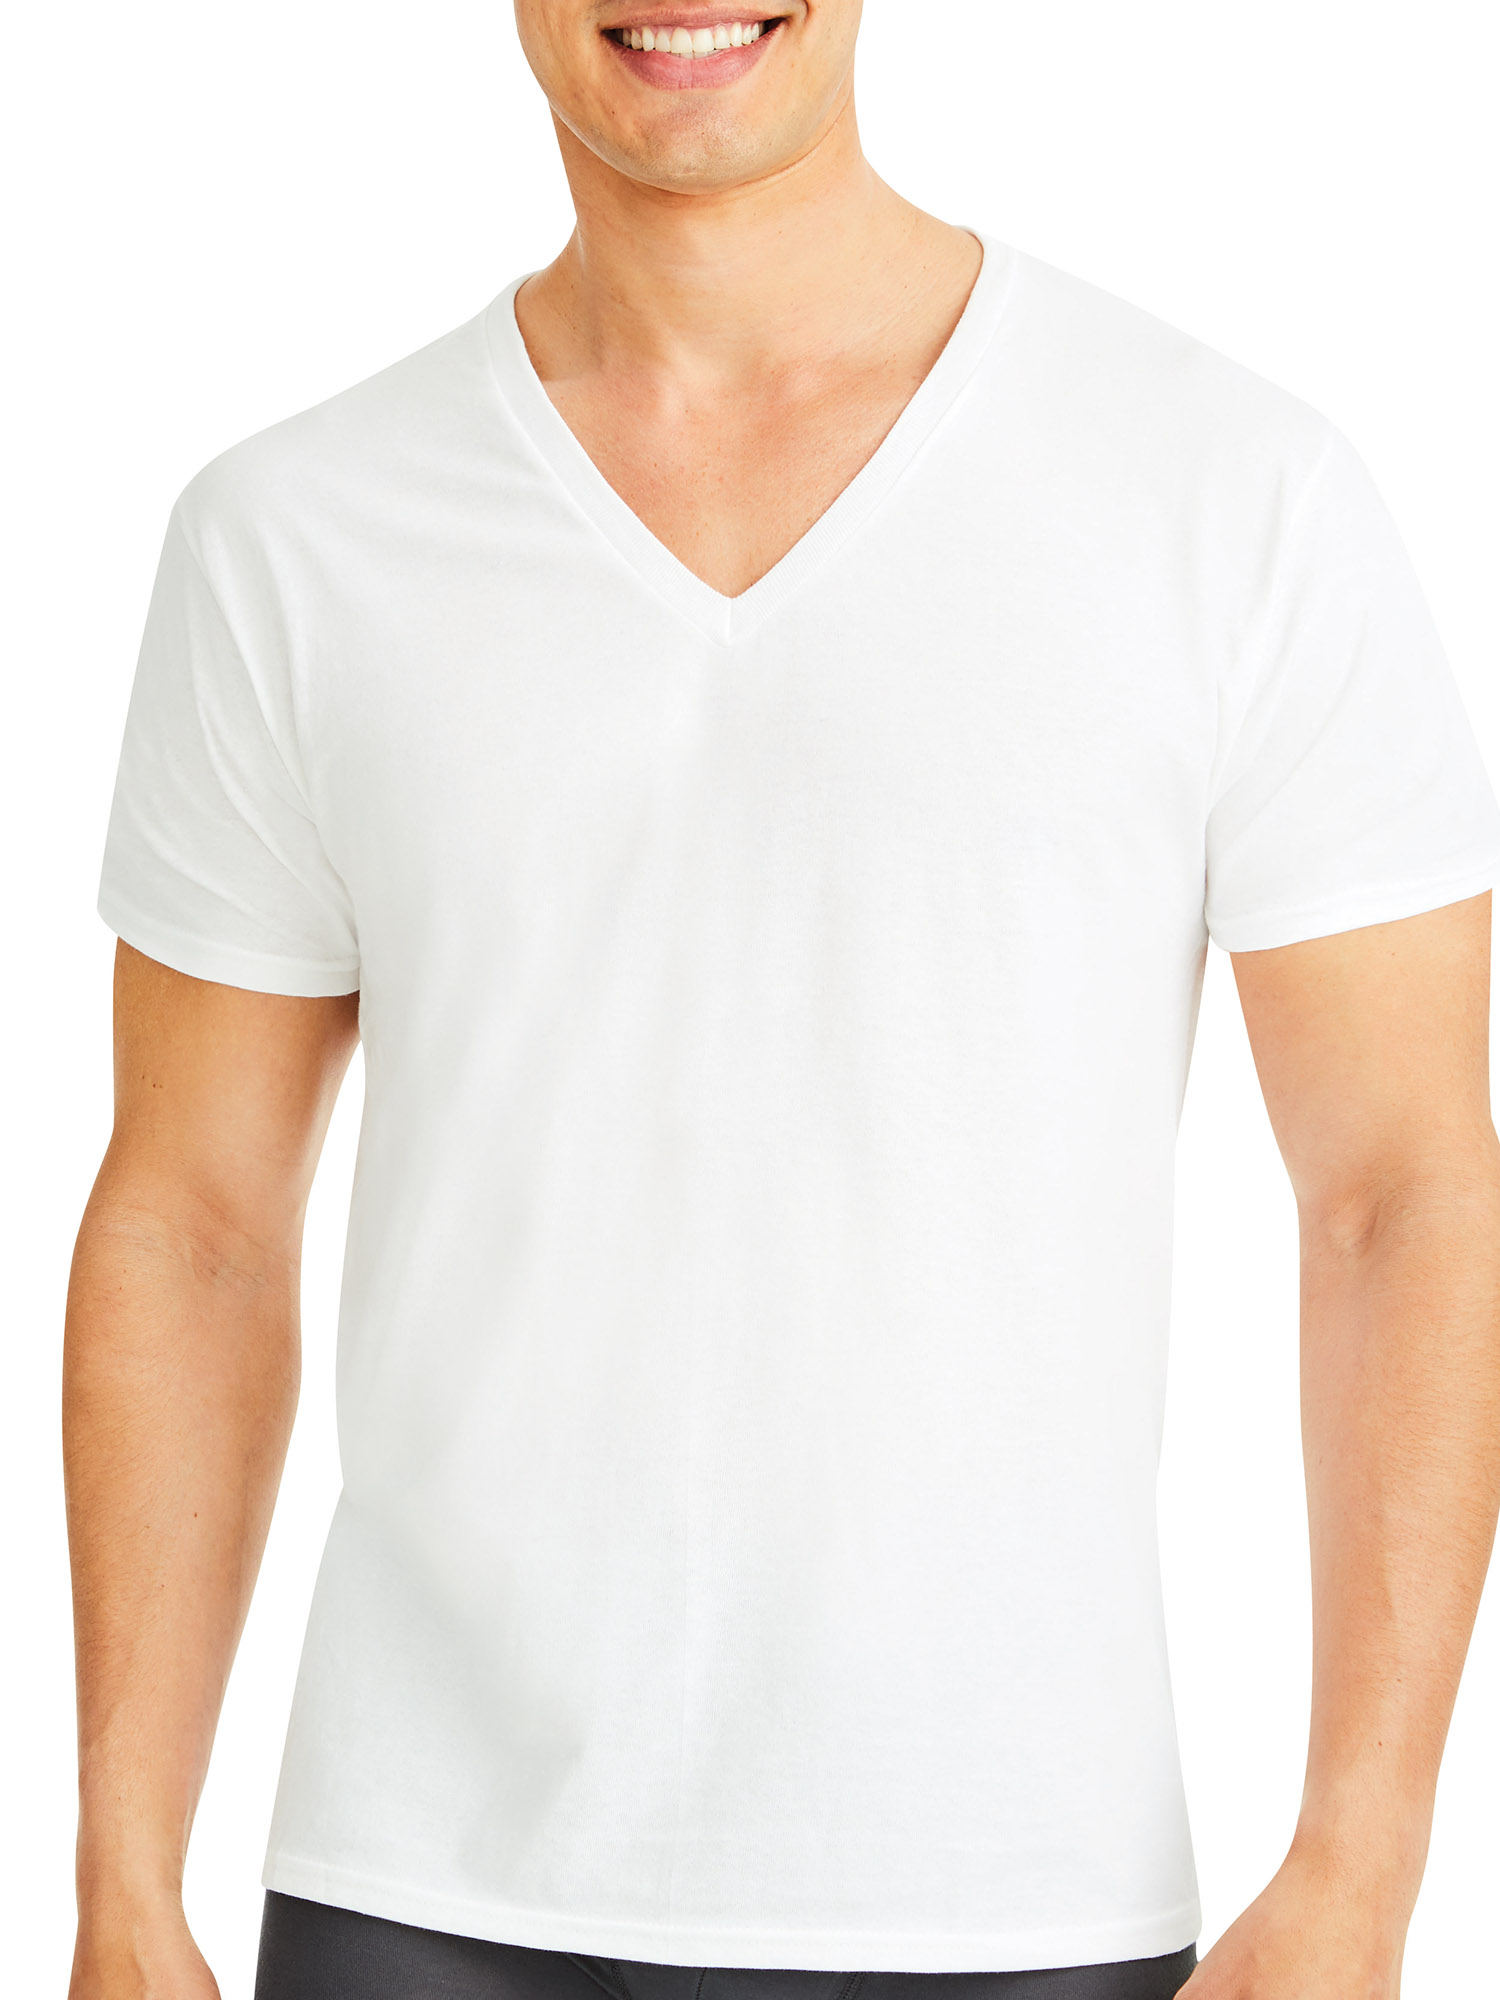 10-Pack Hanes White V Neck ComfortSoft T-Shirts